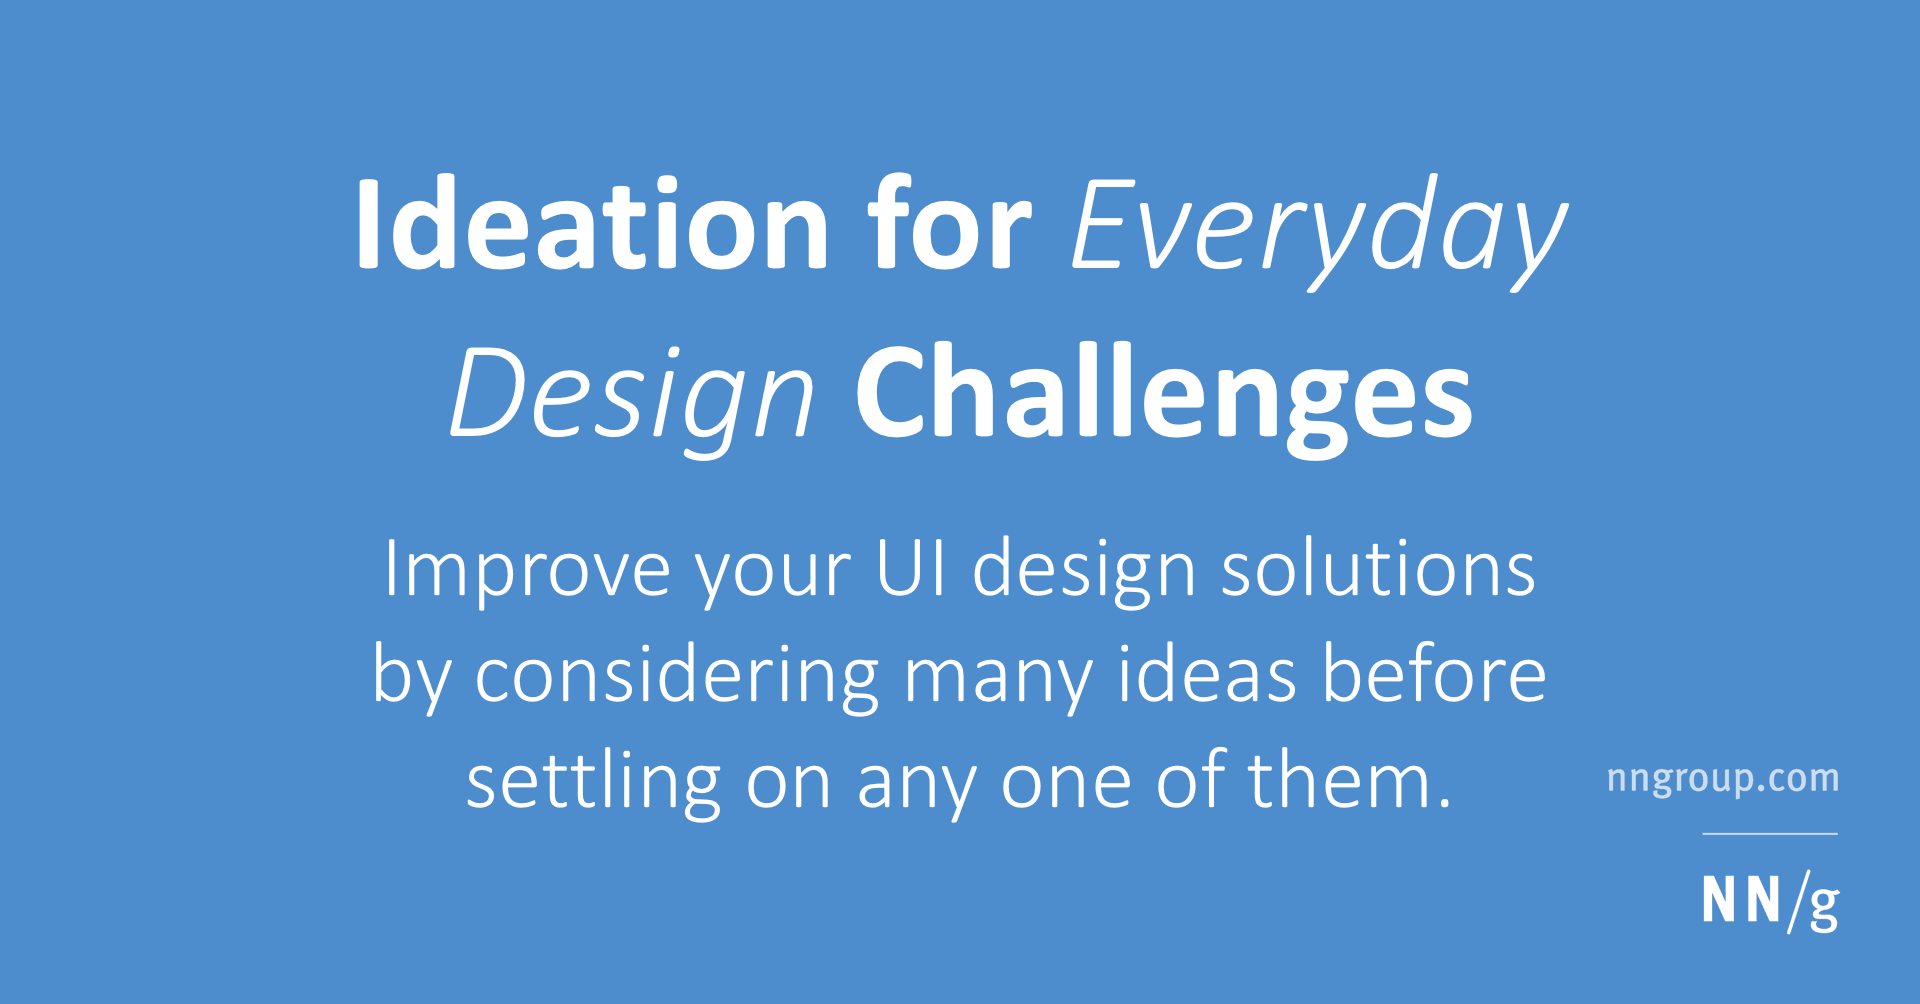 Ideation for Everyday Design Challenges